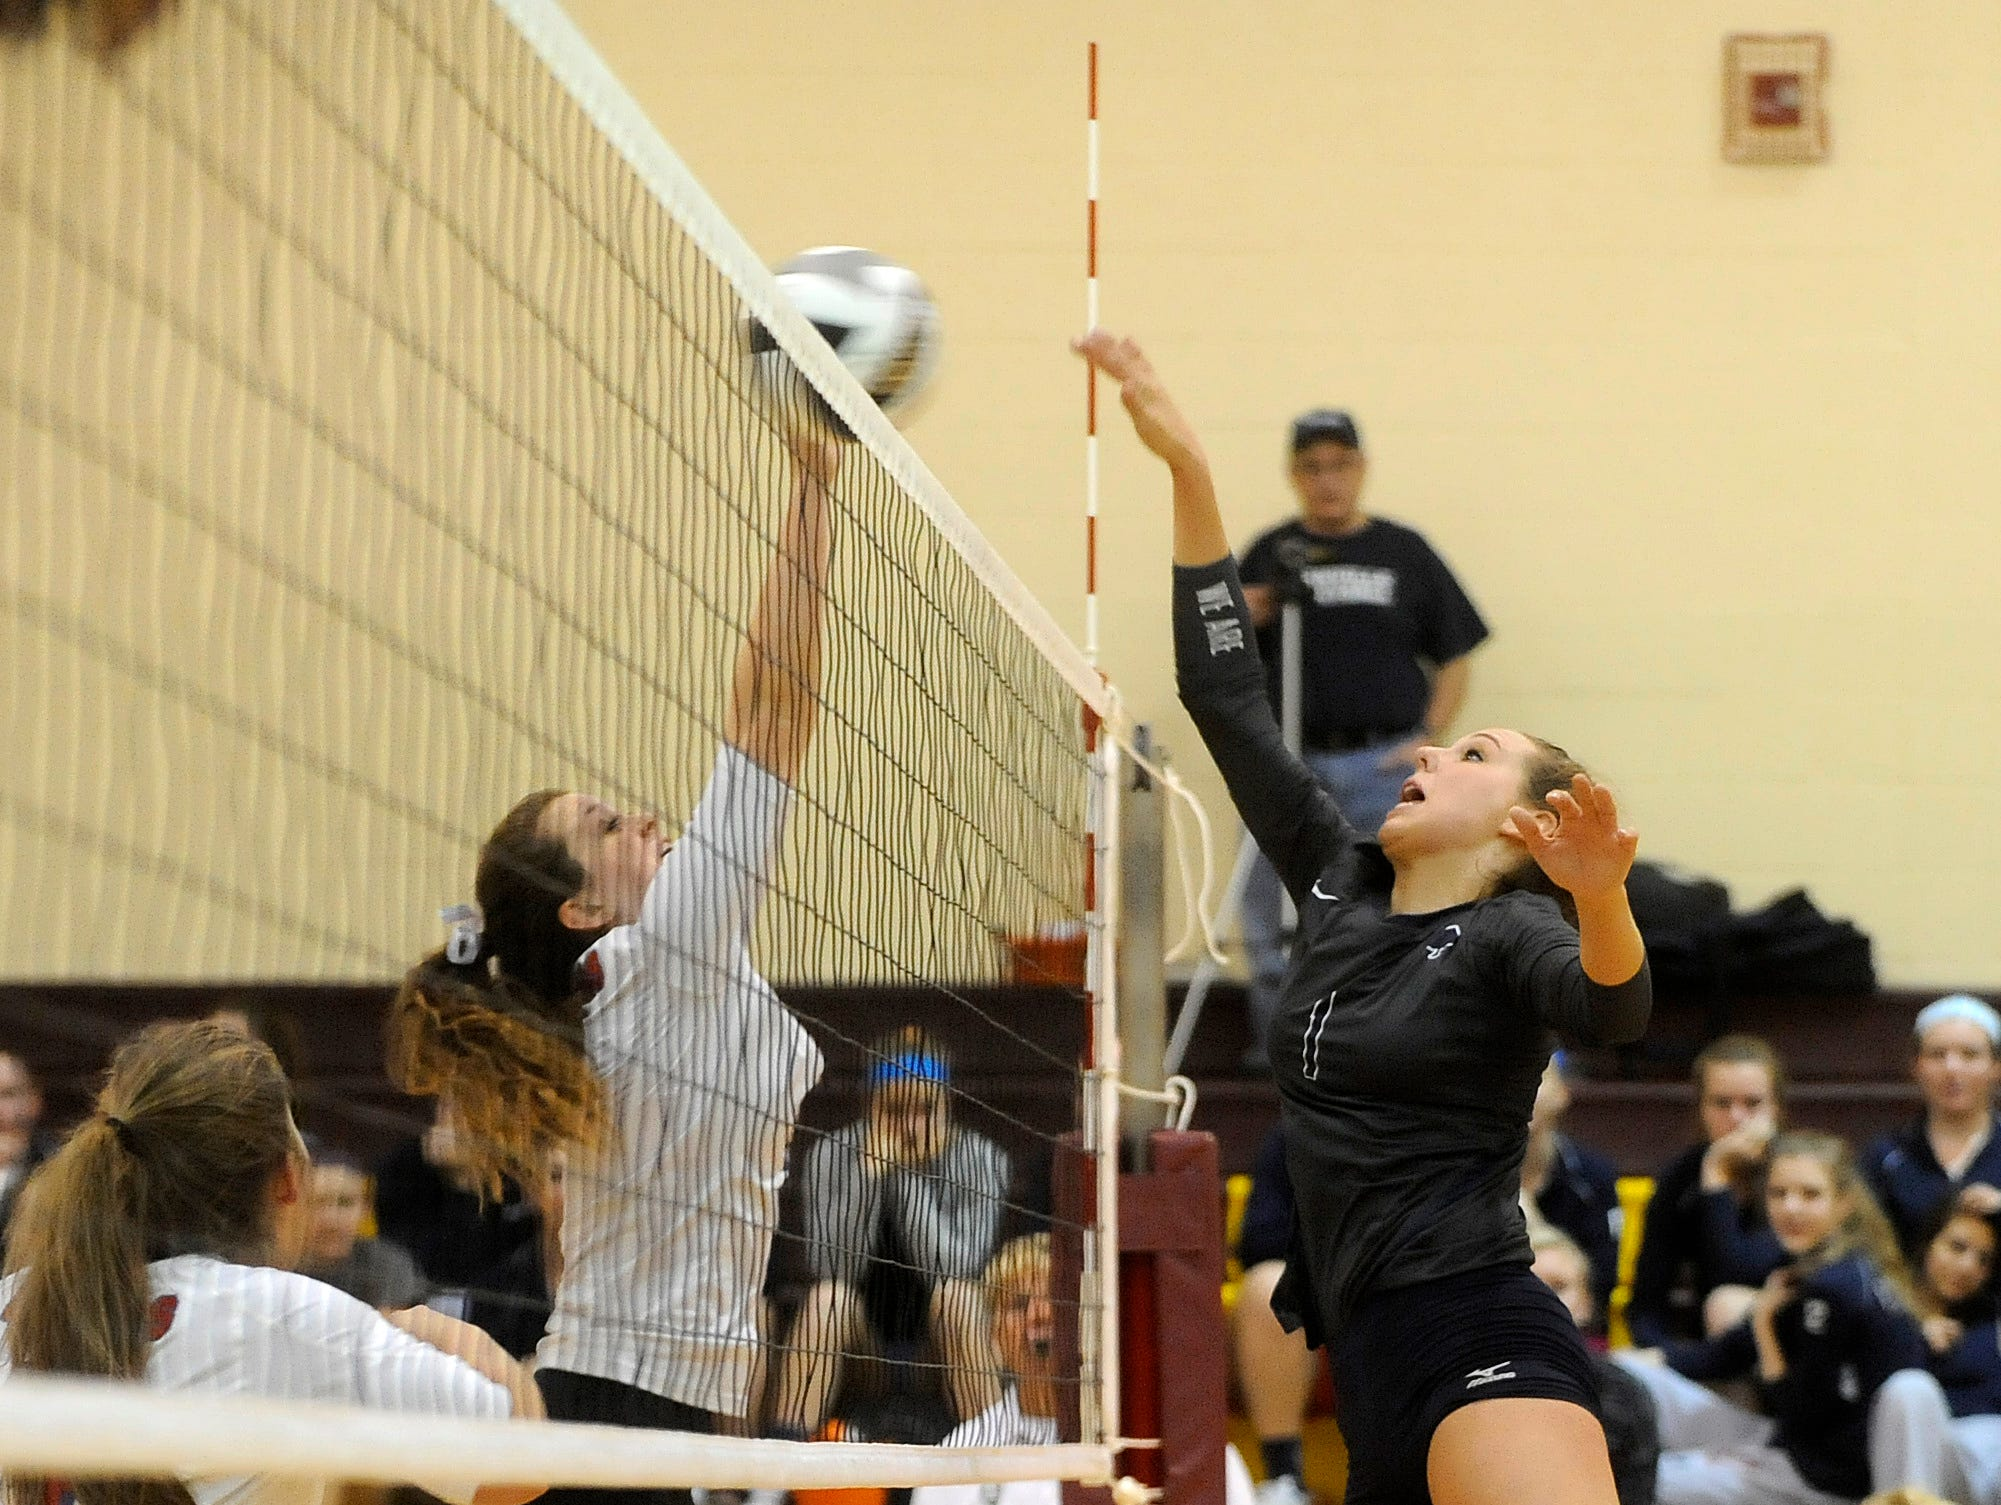 Granville's Brooklyn Holthaus tips the ball to Lakewood's Jenna Neumeyer during a Division II district semifinal on Thursday, Oct. 29, 2015, at Licking Heights. The Blue Aces defeated the Lancers 3-1 and will advance to play Bishop Hartley in the district finals at 1 p.m. on Saturday at Licking Heights.